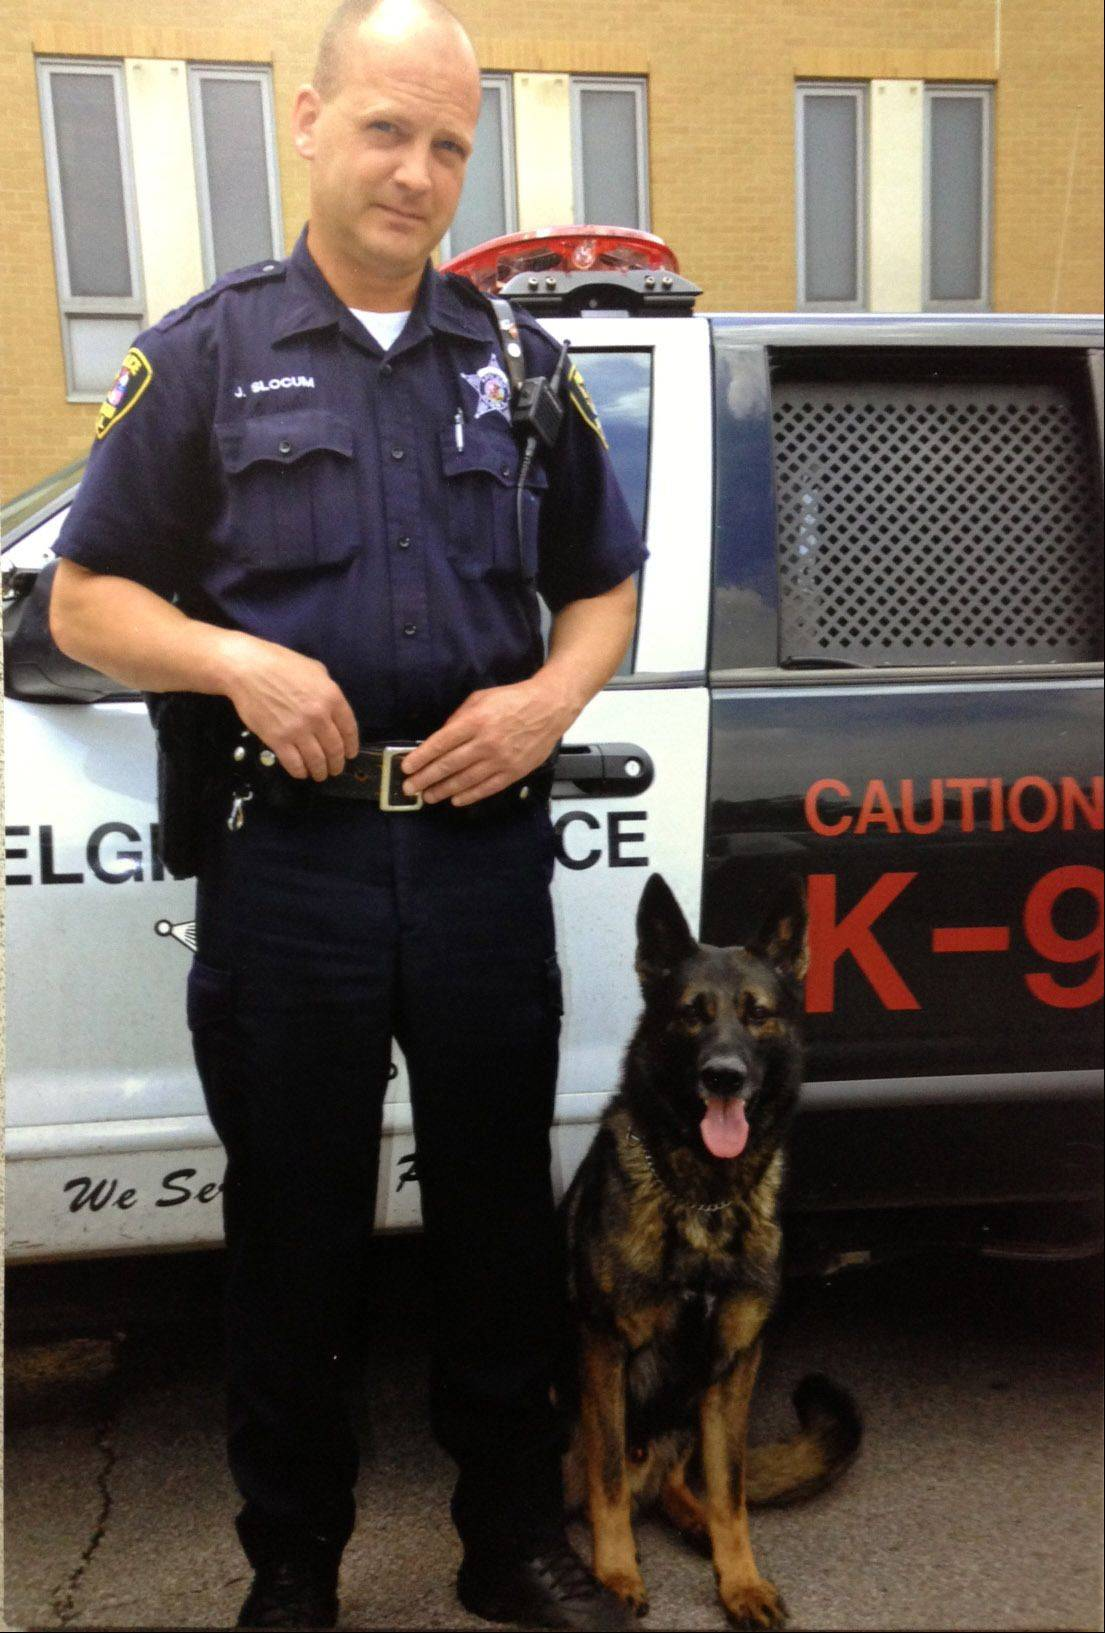 Elgin police officer John Slocum and Keiser, a German shepherd, were a K-9 unit in Elgin for six years. Keiser died on duty July 5 from cancer. Keiser was the first Elgin Police Department dog to die on duty. The department plans to create a memorial in its lobby to honor all service dogs that have worked in Elgin. Police officials still are determining whether to get another dog.